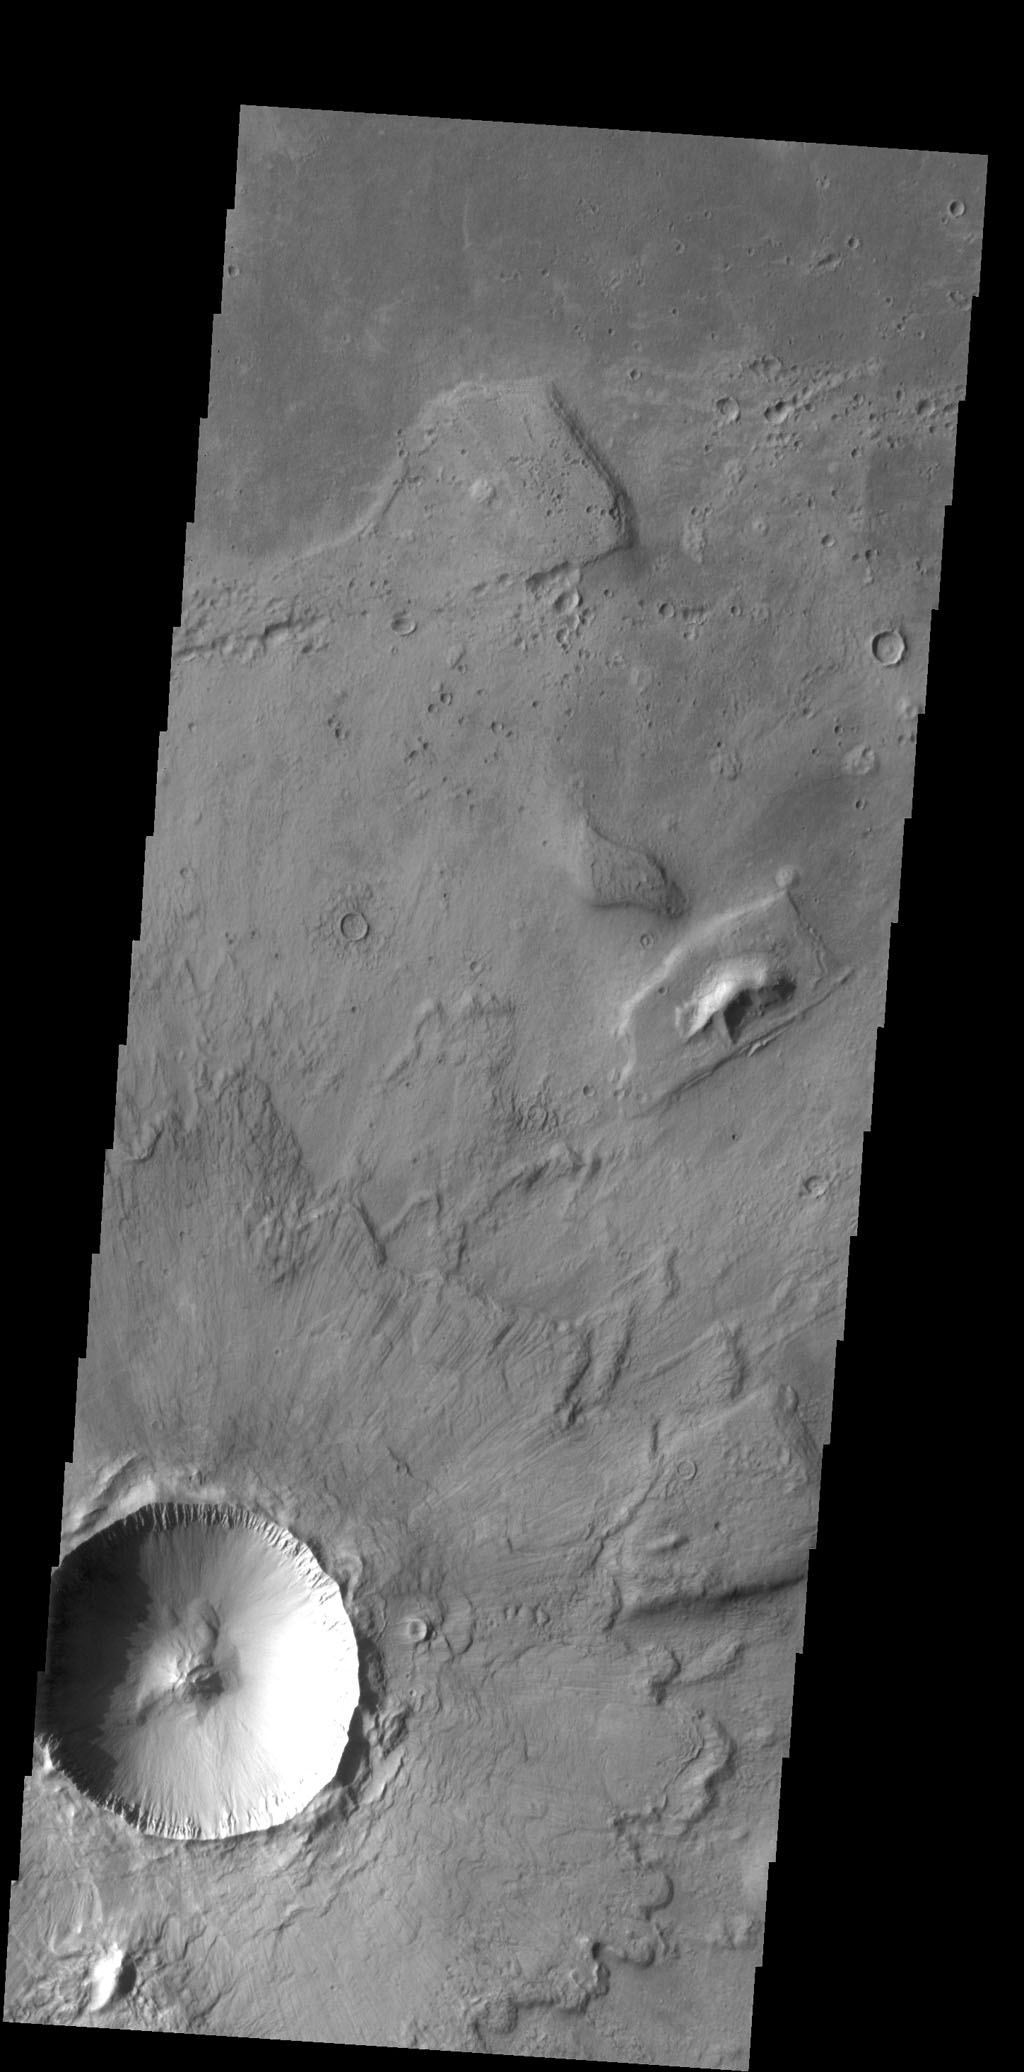 Multiple overlapping lobes of ejecta are visible in this image of an unnamed crater in Chryse Planitia as seen by NASA's 2001 Mars Odyssey spacecraft.